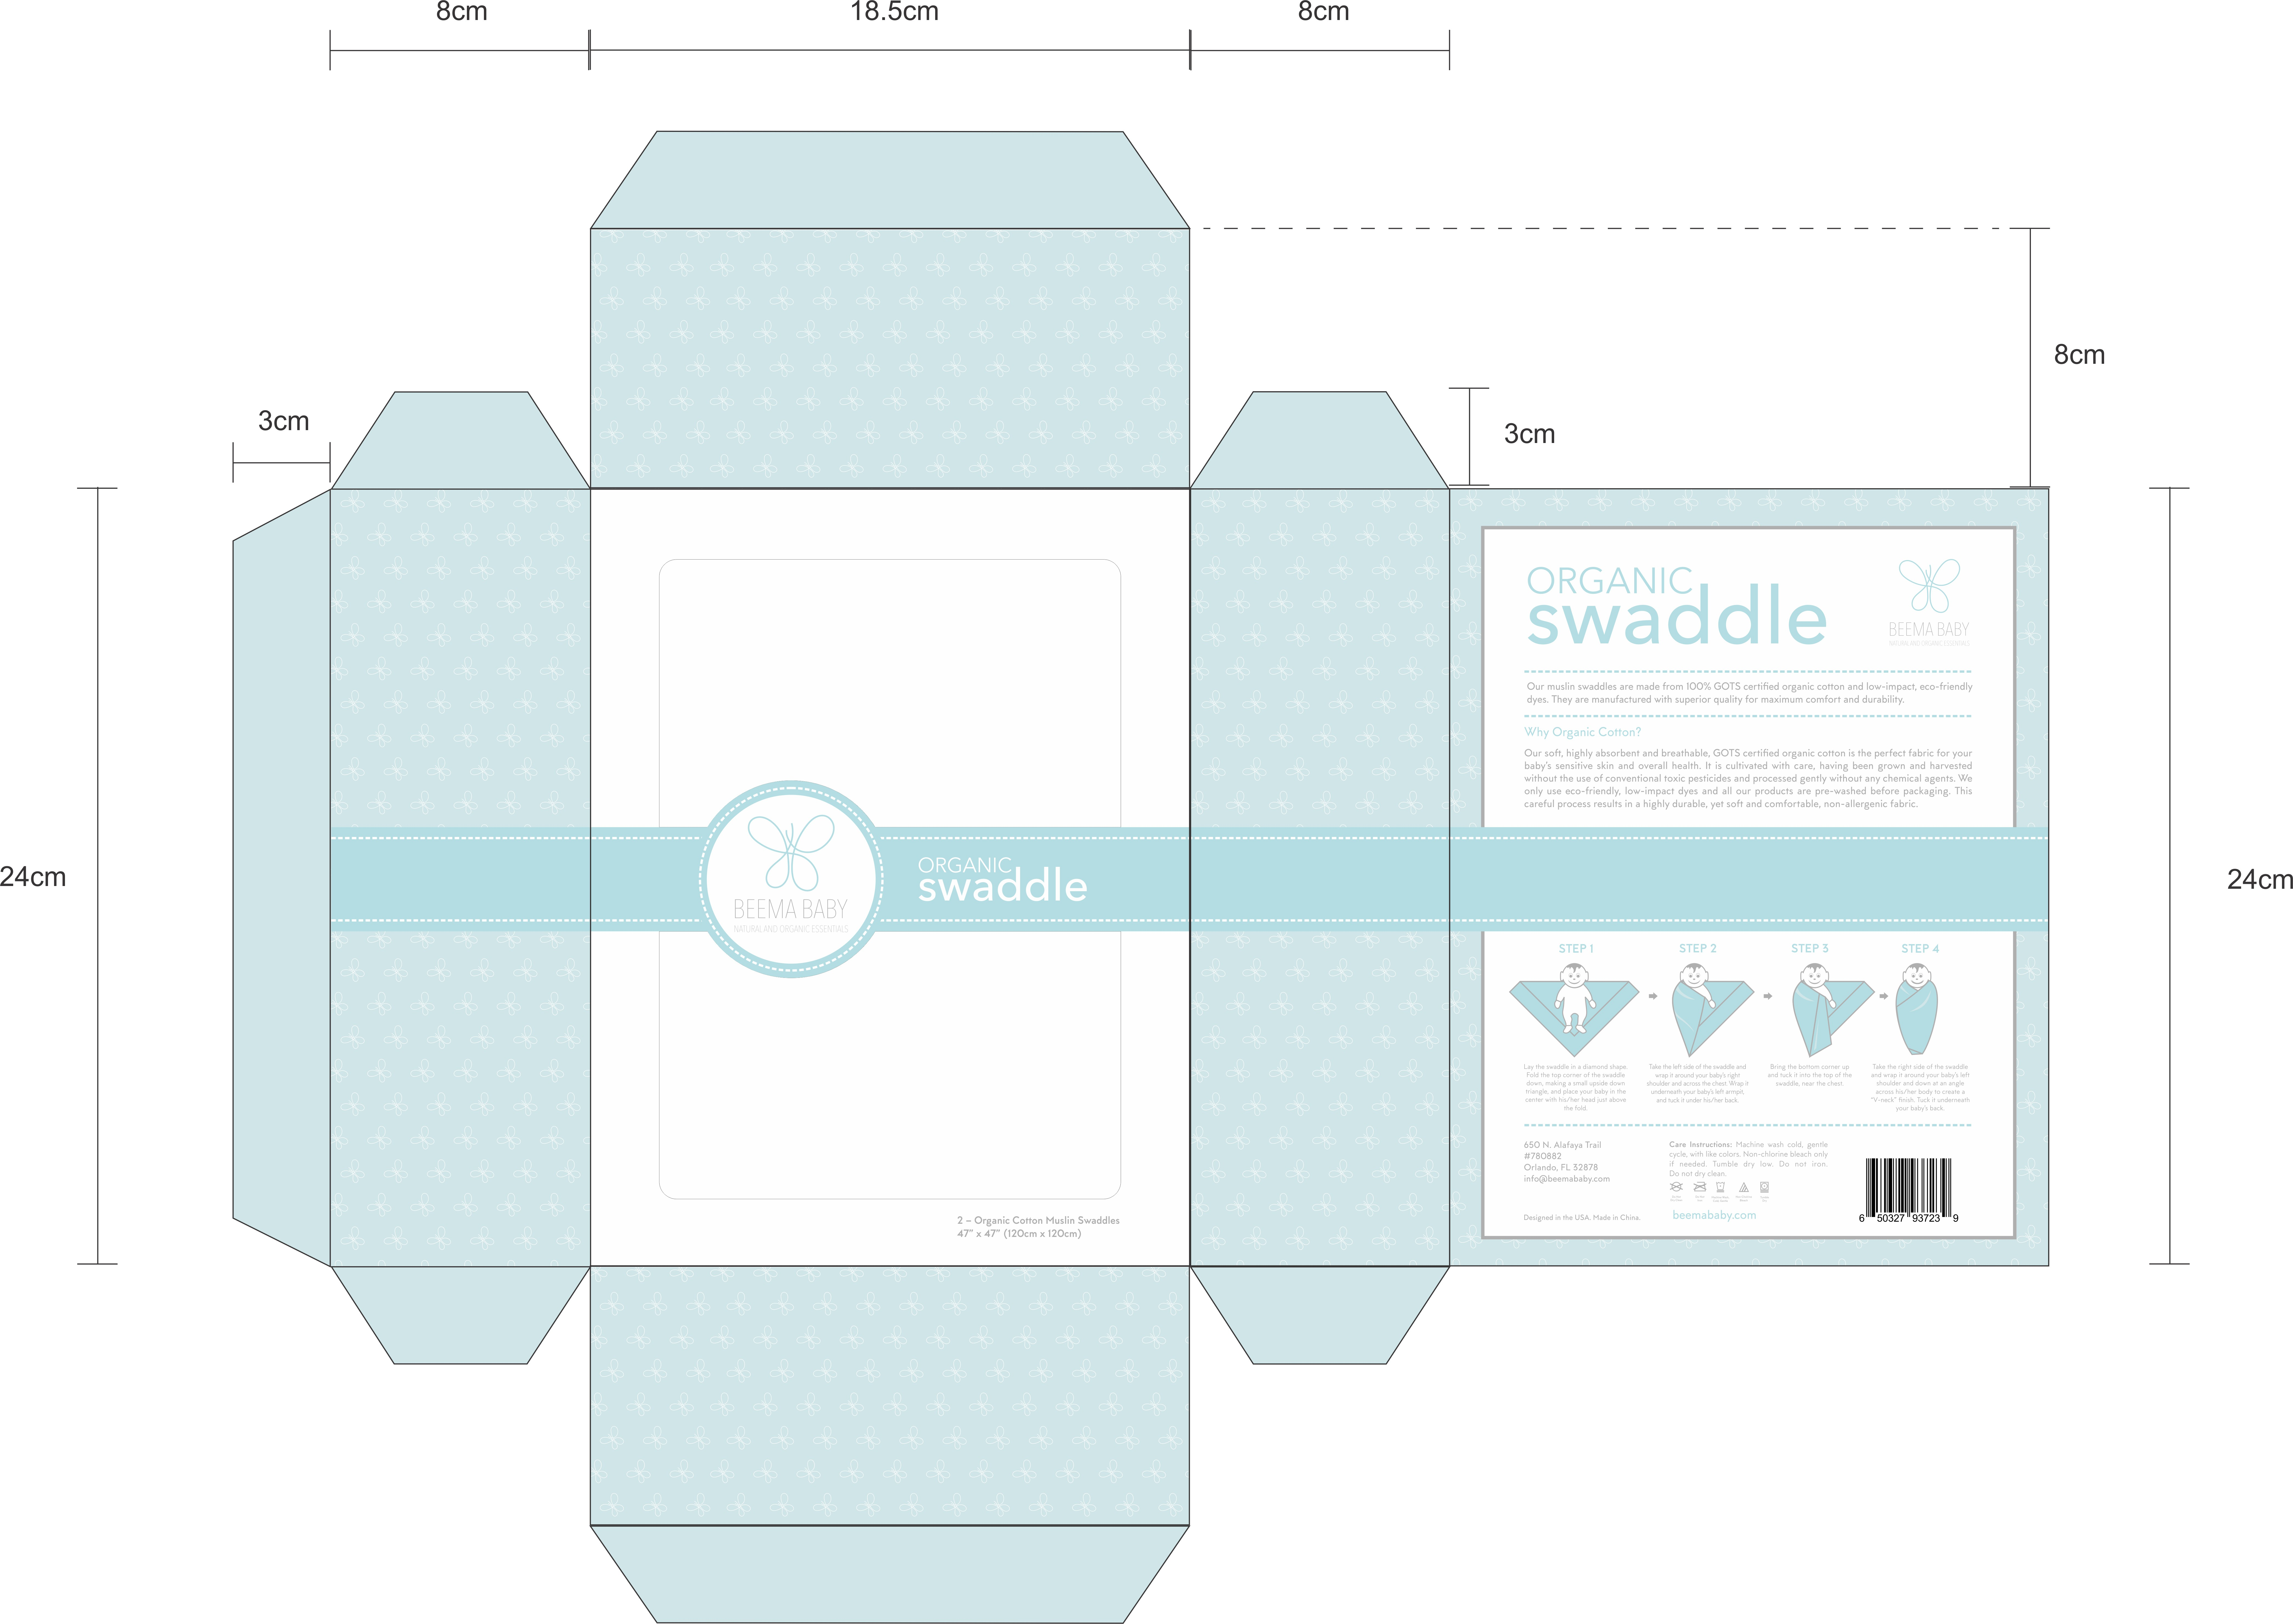 Blind contest for a product package design. Winner will be hired to design 10 additional product packages.